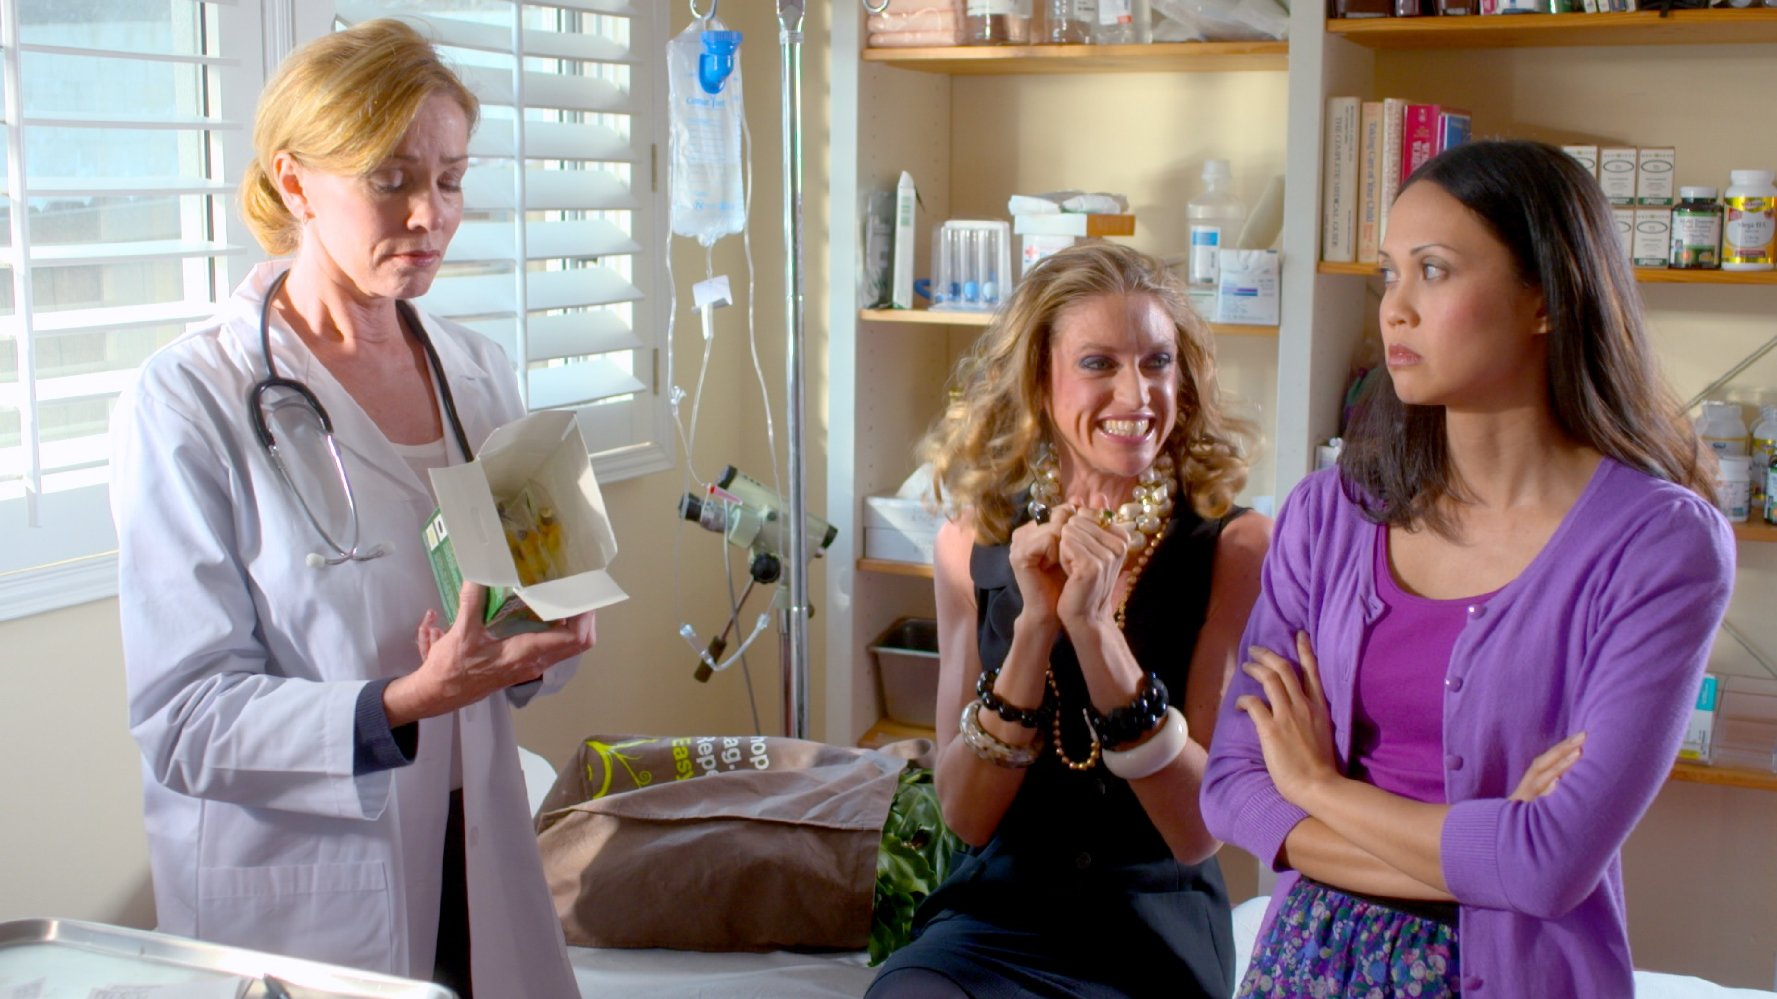 Jane Lawrence,Rachel Crawford Adult clips Penelope Keith,Bruce Boa